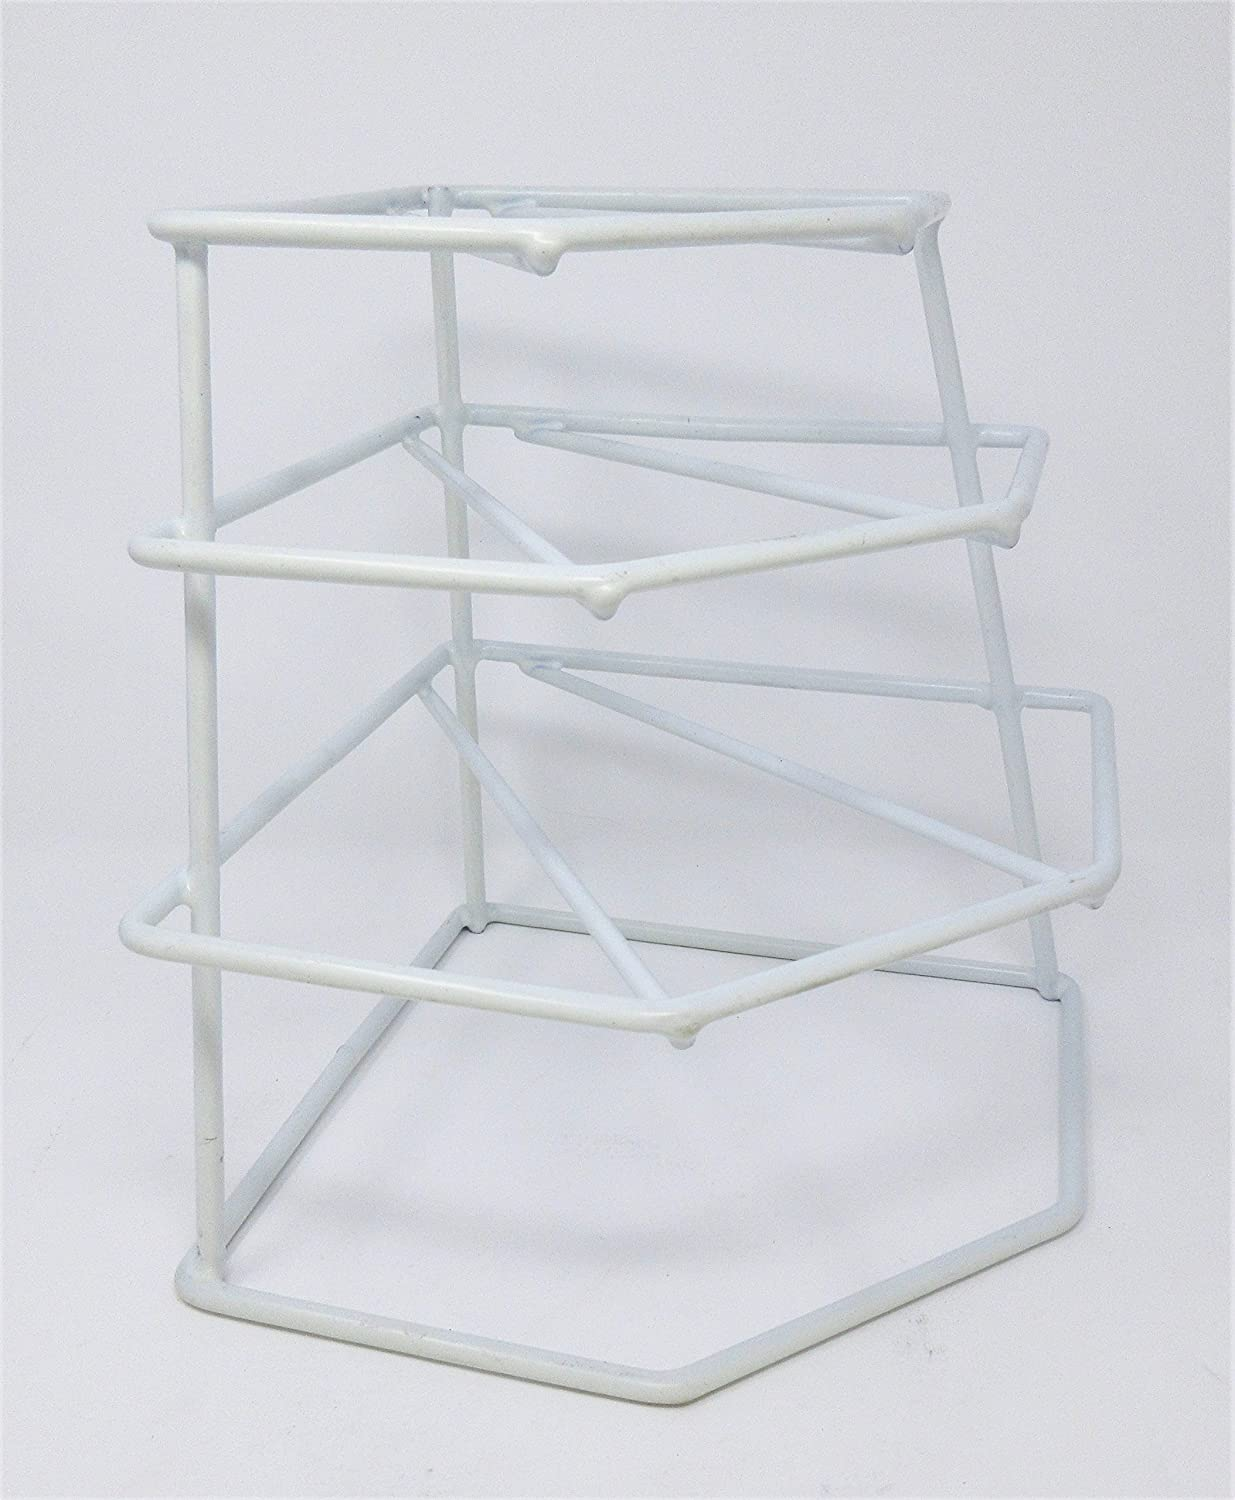 CookSpace (TM) White 4 Tier Heavy Duty Corner Plate Storage Rack Stand Holder CookSpace ®